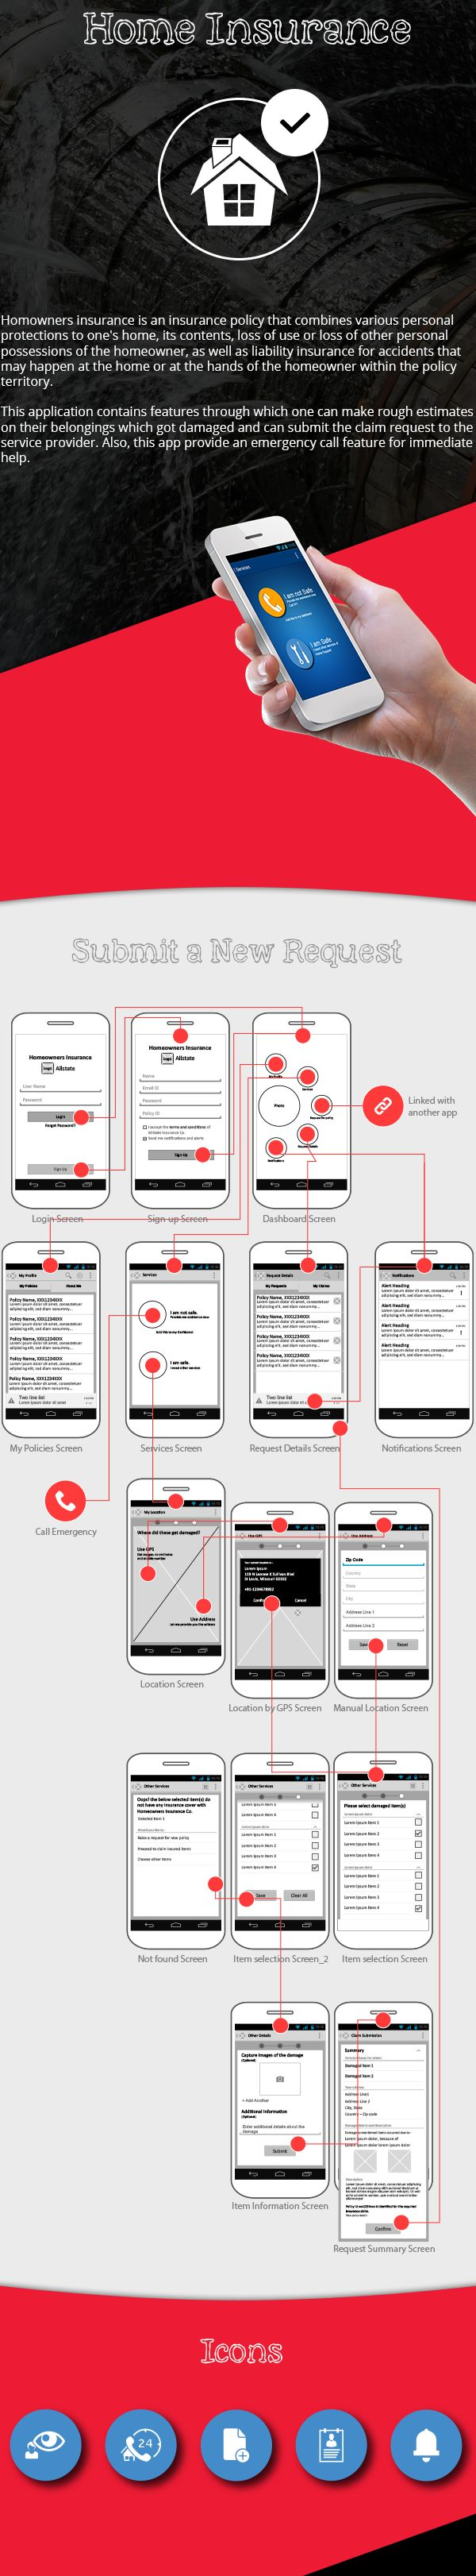 83 best Health Insurance Sites and Apps images on Pinterest   App ...